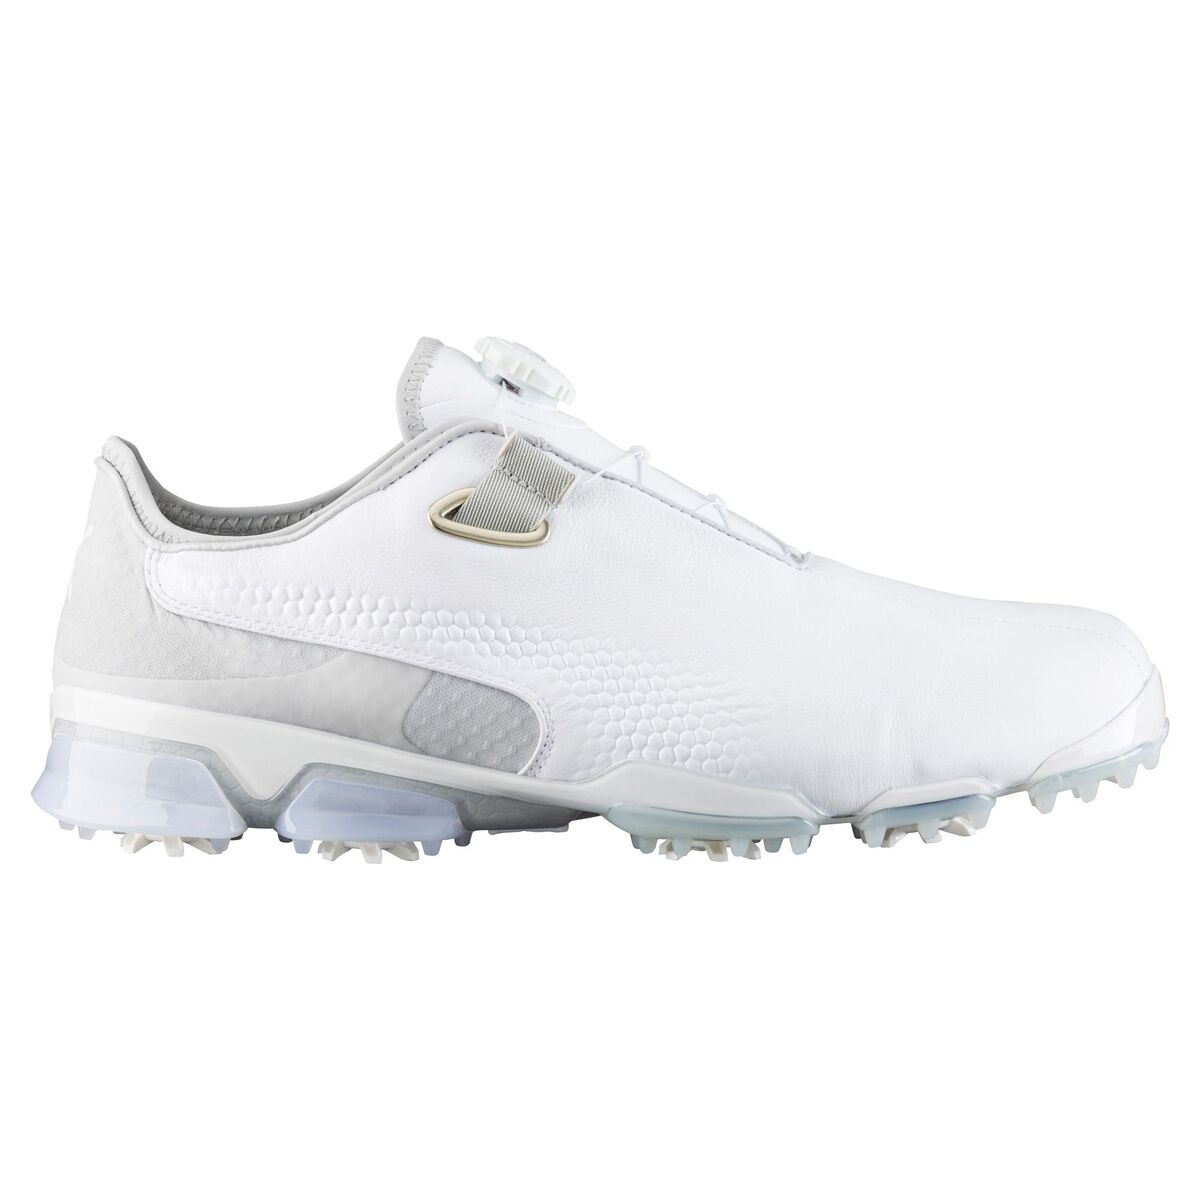 PUMA TITANTOUR Ignite Premium Disc Men s Golf Shoe - White Grey ab4ebffaa